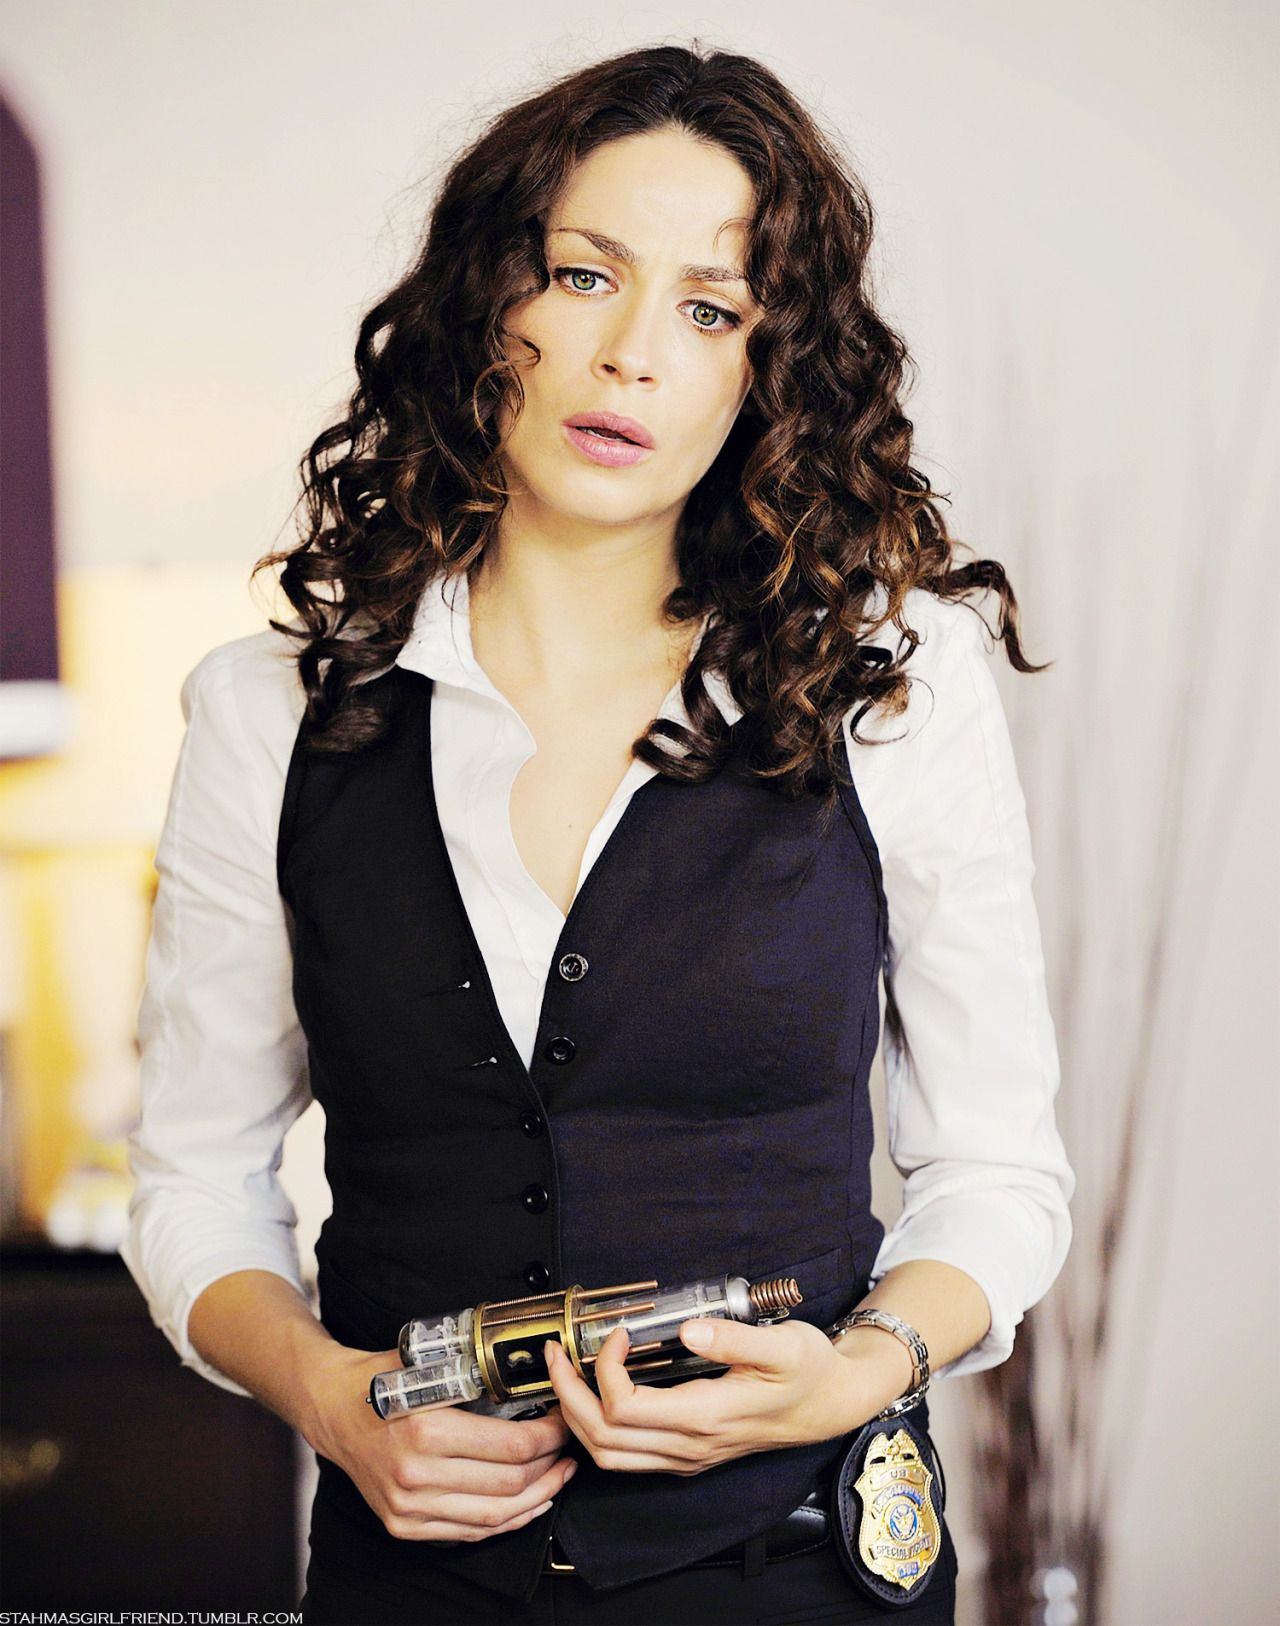 Kelly Warehouse Myka Bering Warehouse 13 Warehouse 13 Warehouse 13